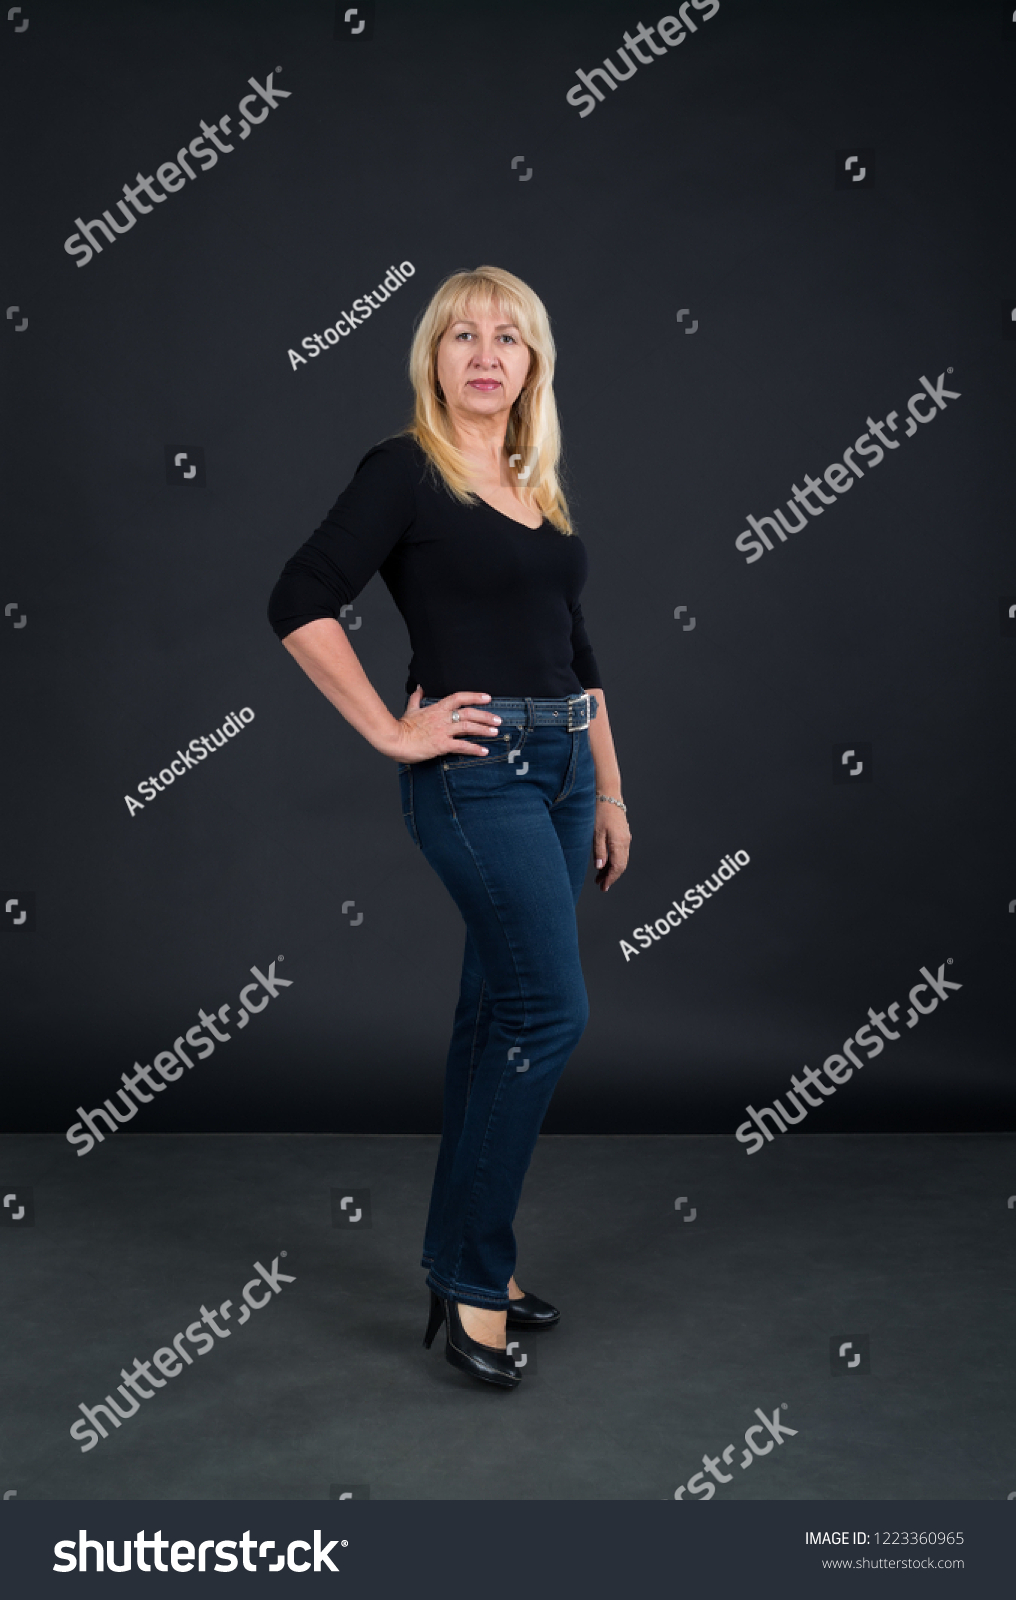 Mature woman 60 years old in full growth against a dark background.